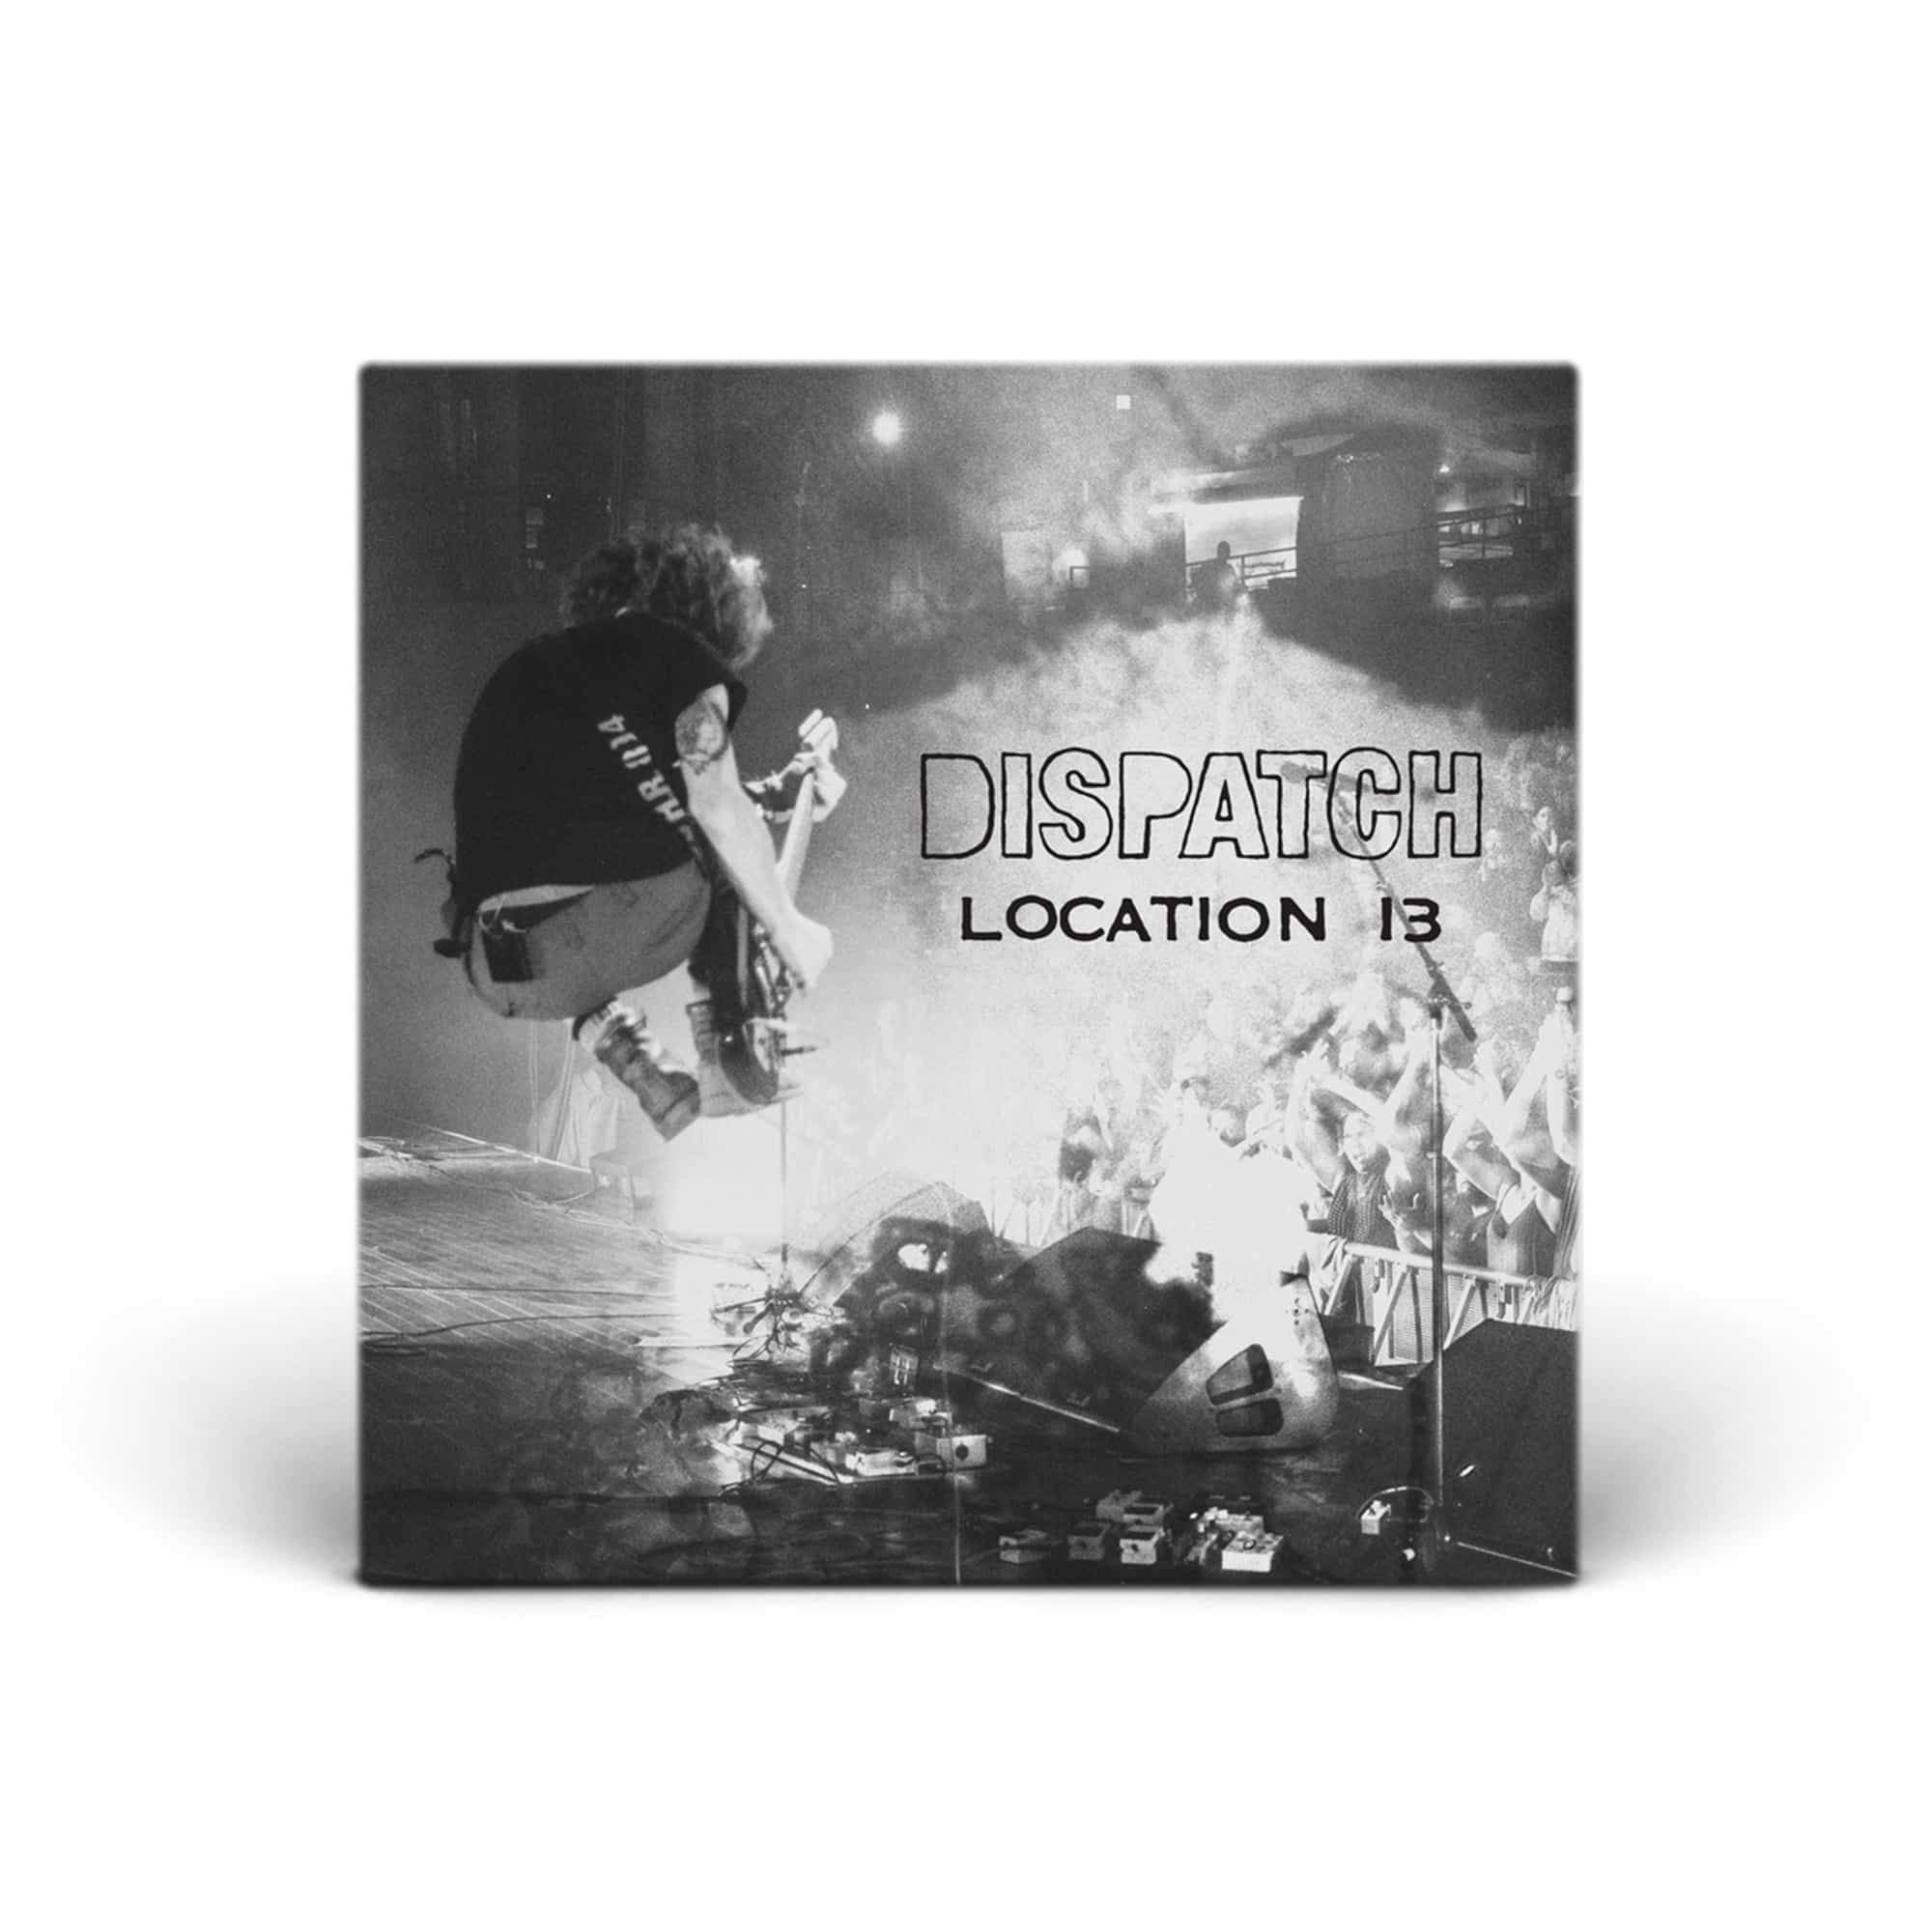 'Location 13' Standard Vinyl LP